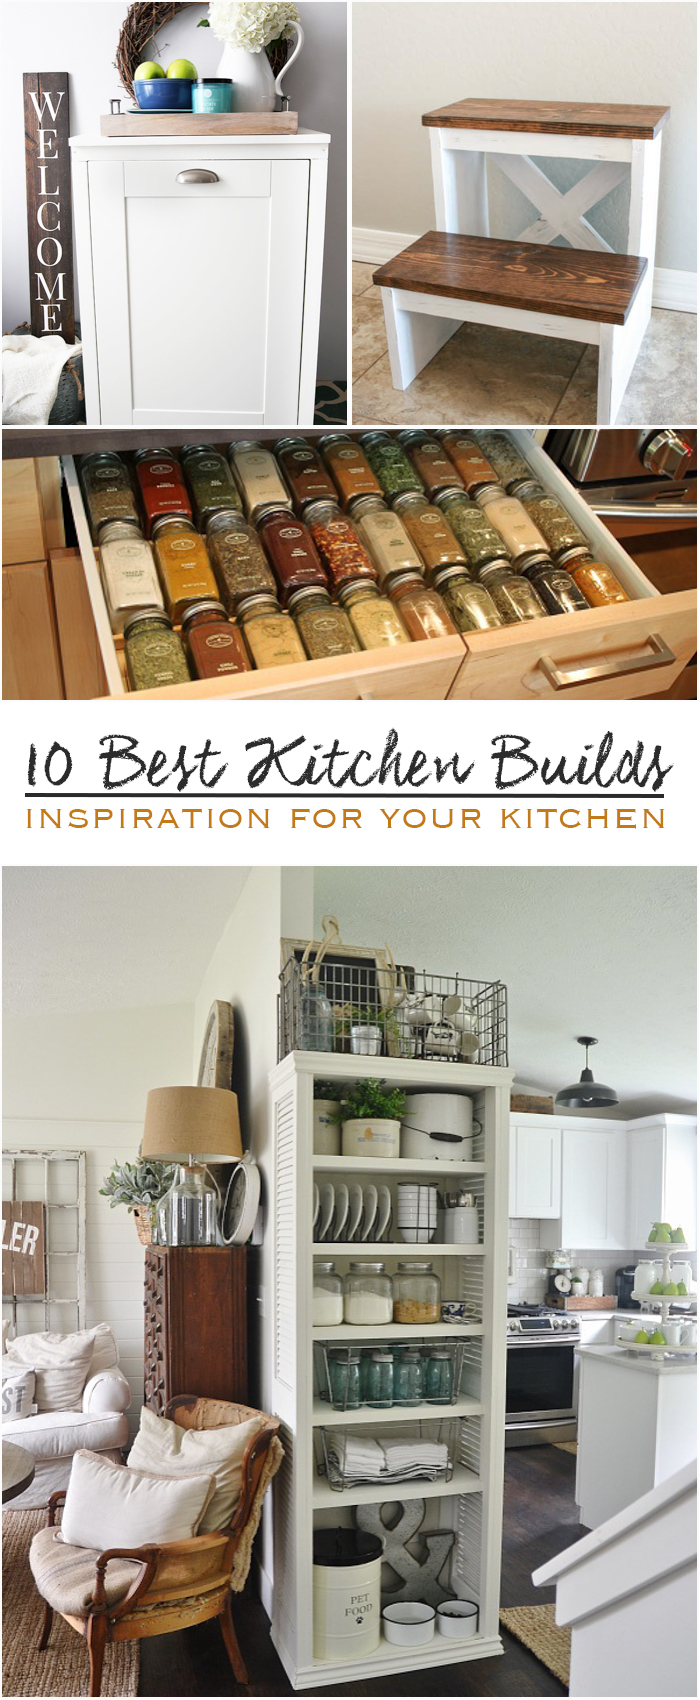 10 Best Kitchen Builds Diy Crafts And Projects Ideas Diy Kitchen Decor